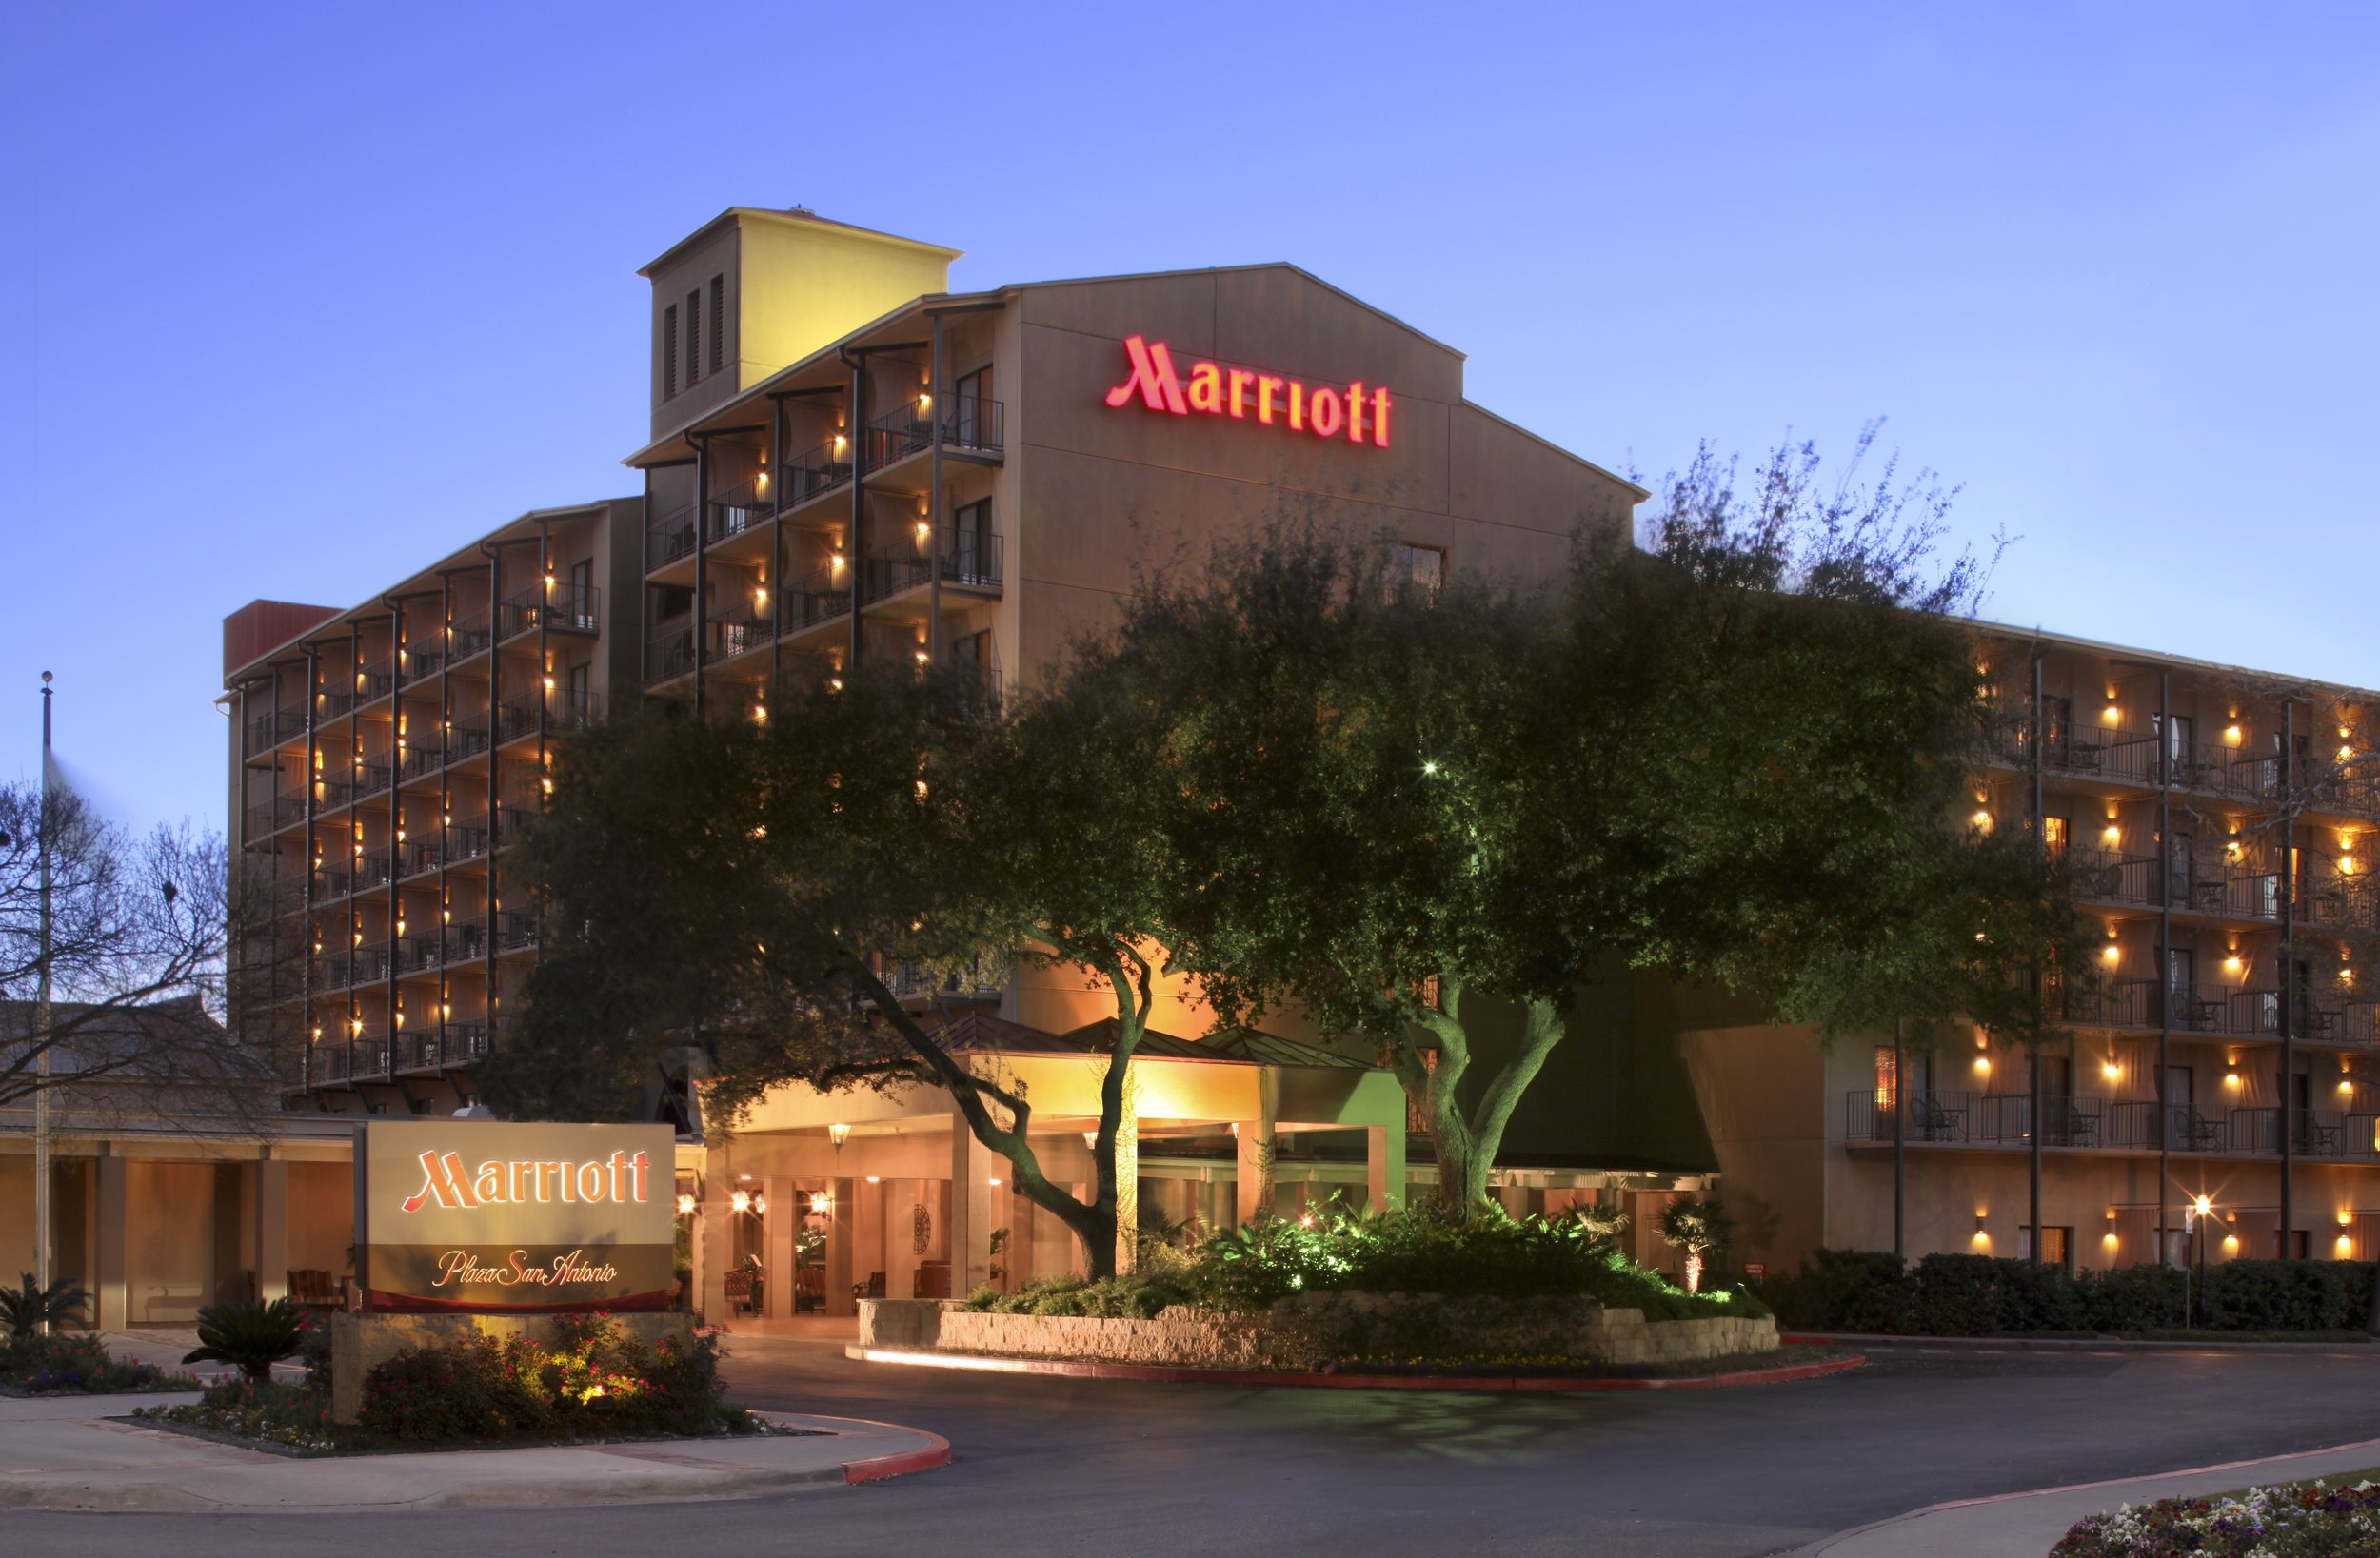 marriott-plaza-san-antonio.jpg